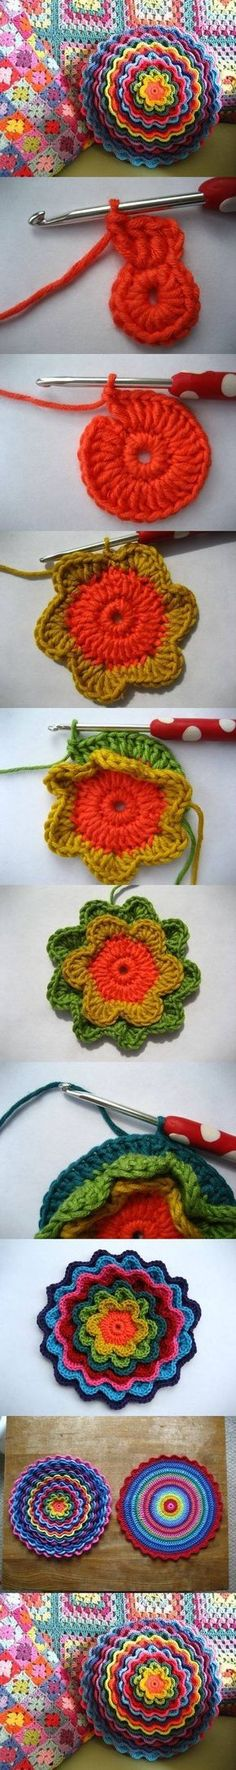 Crochet layered flower